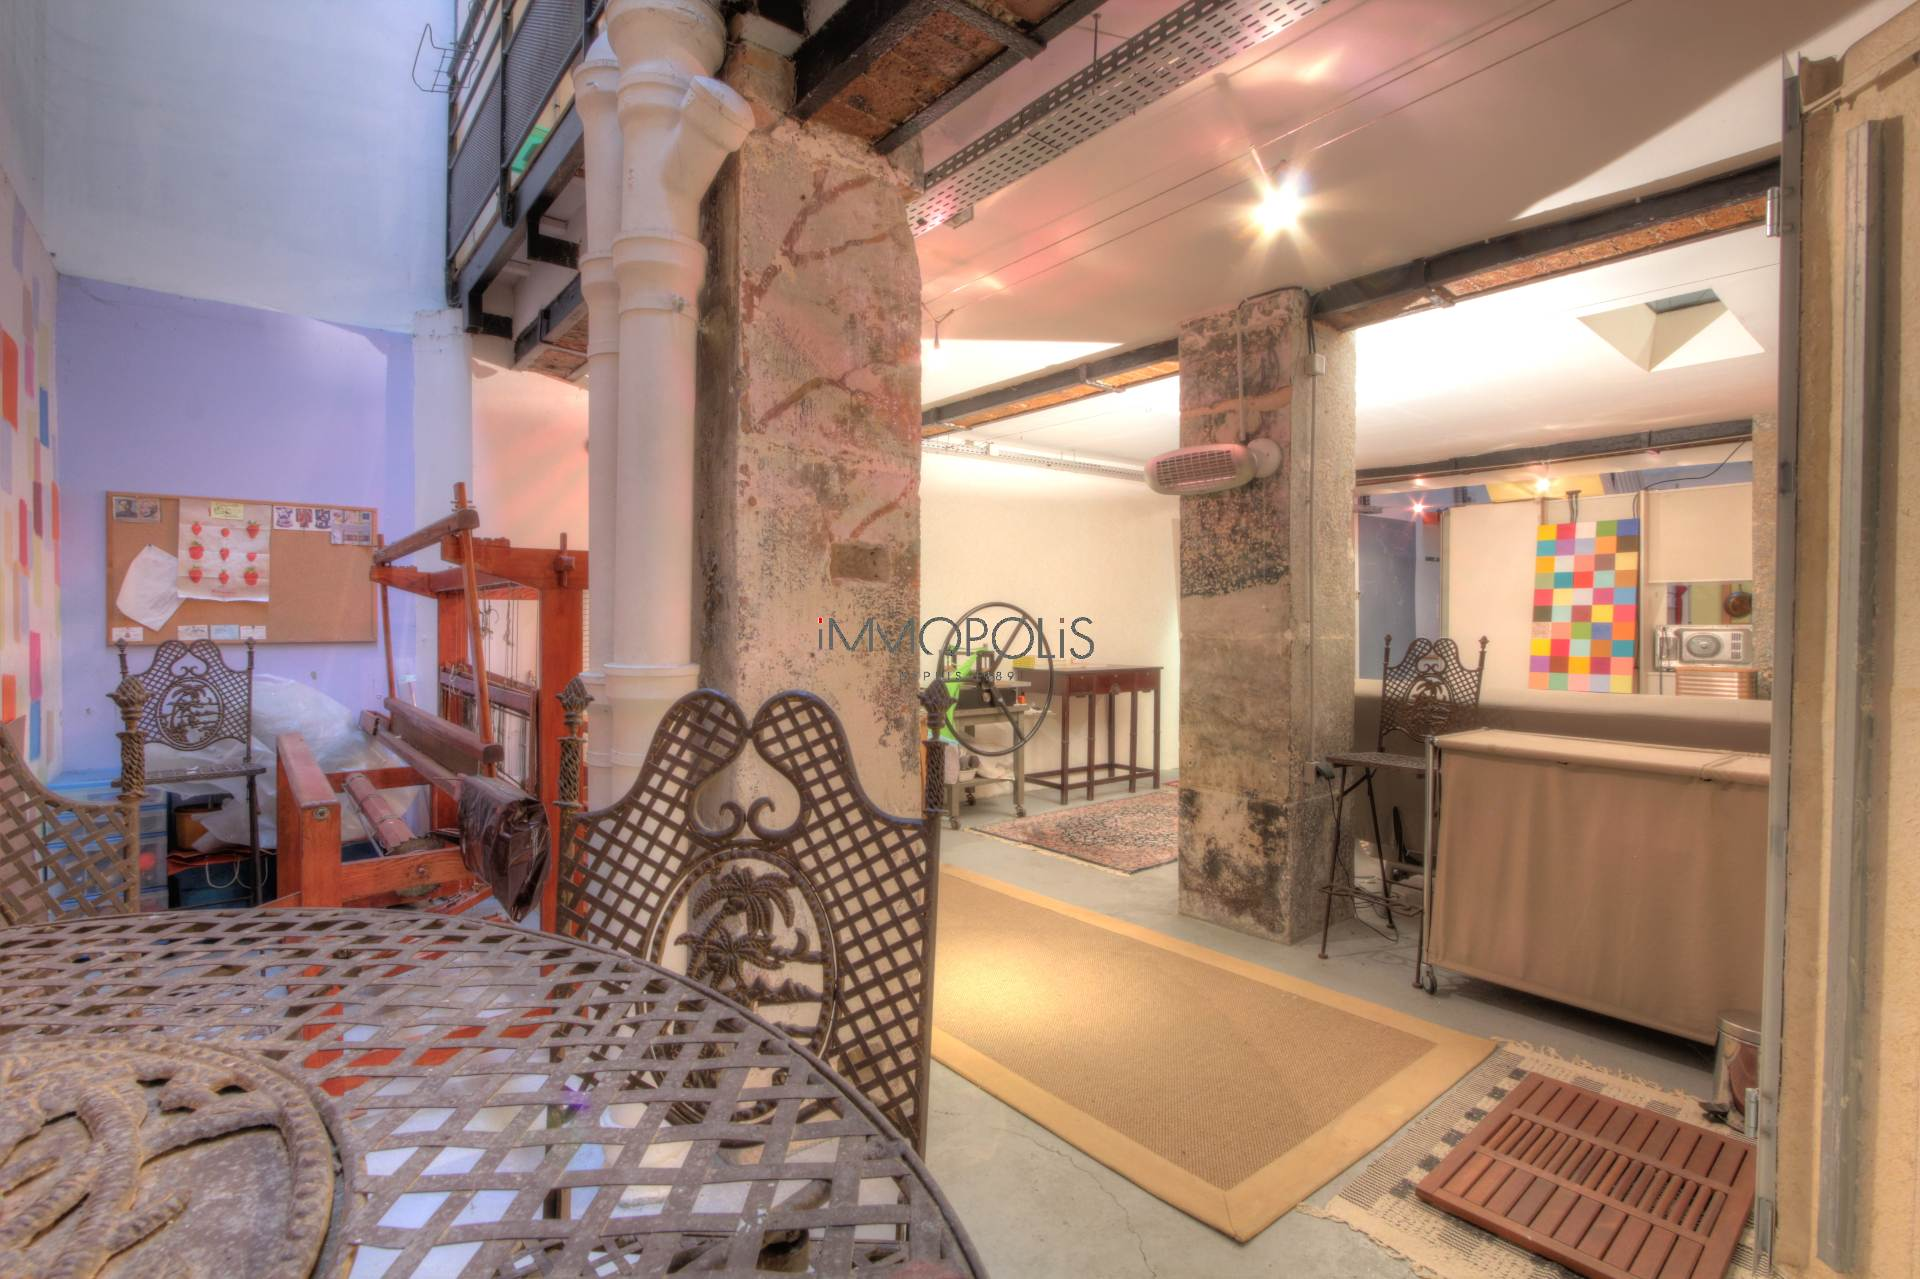 Totally atypical LOFT / ARTIST WORKSHOP, in OPEN-SPACE on three levels with TWO GLASS ROOMS overlooking a quiet courtyard! 6